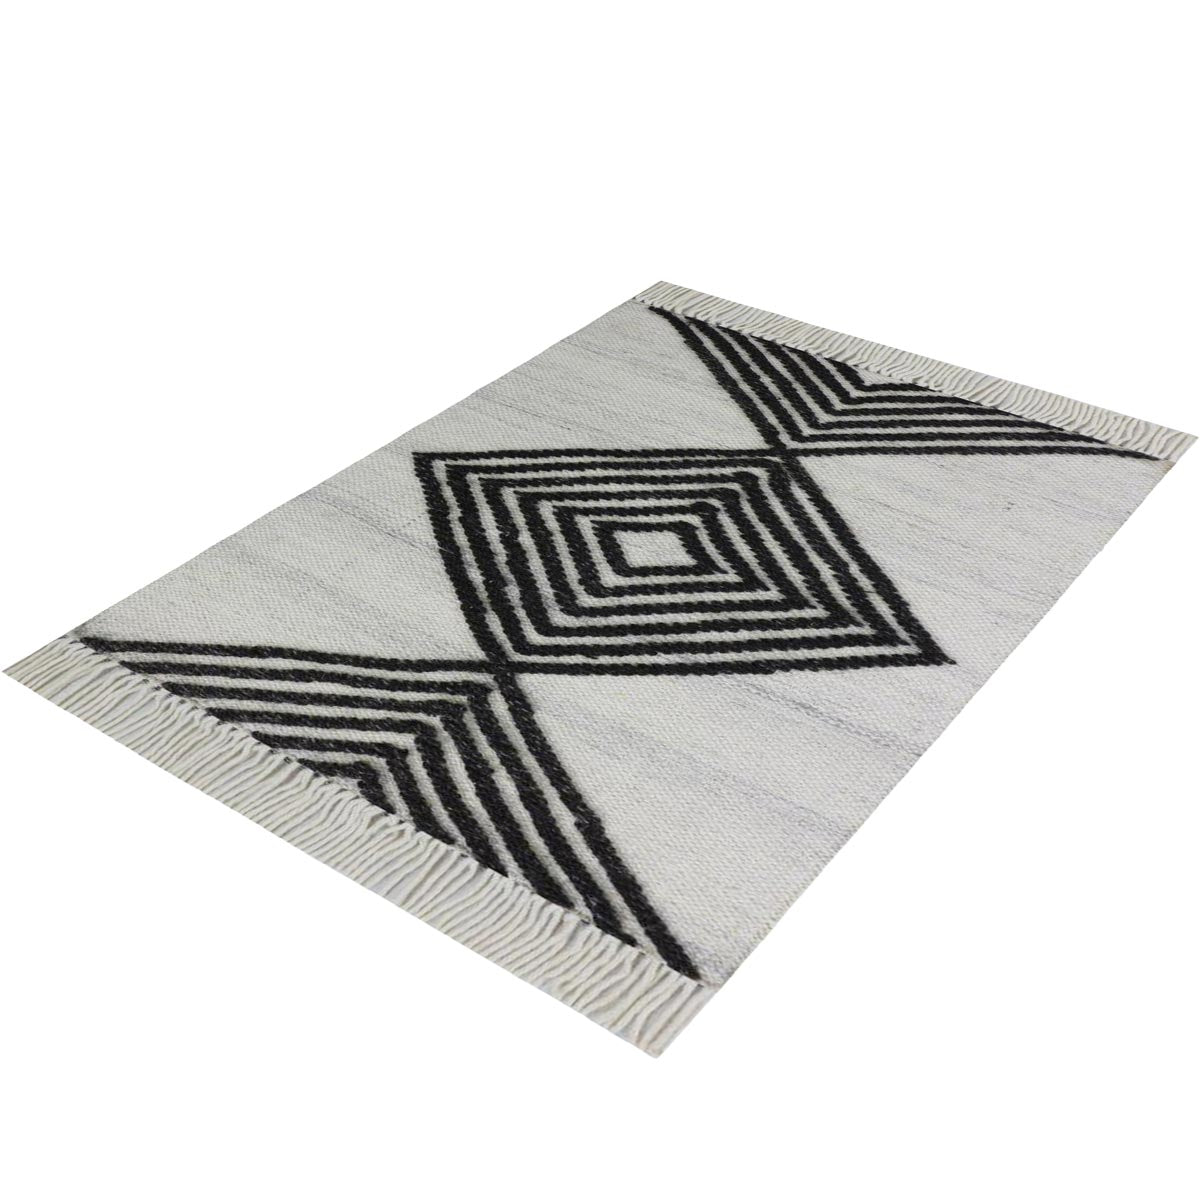 Tangier Rug 16 White/Dark Grey 3